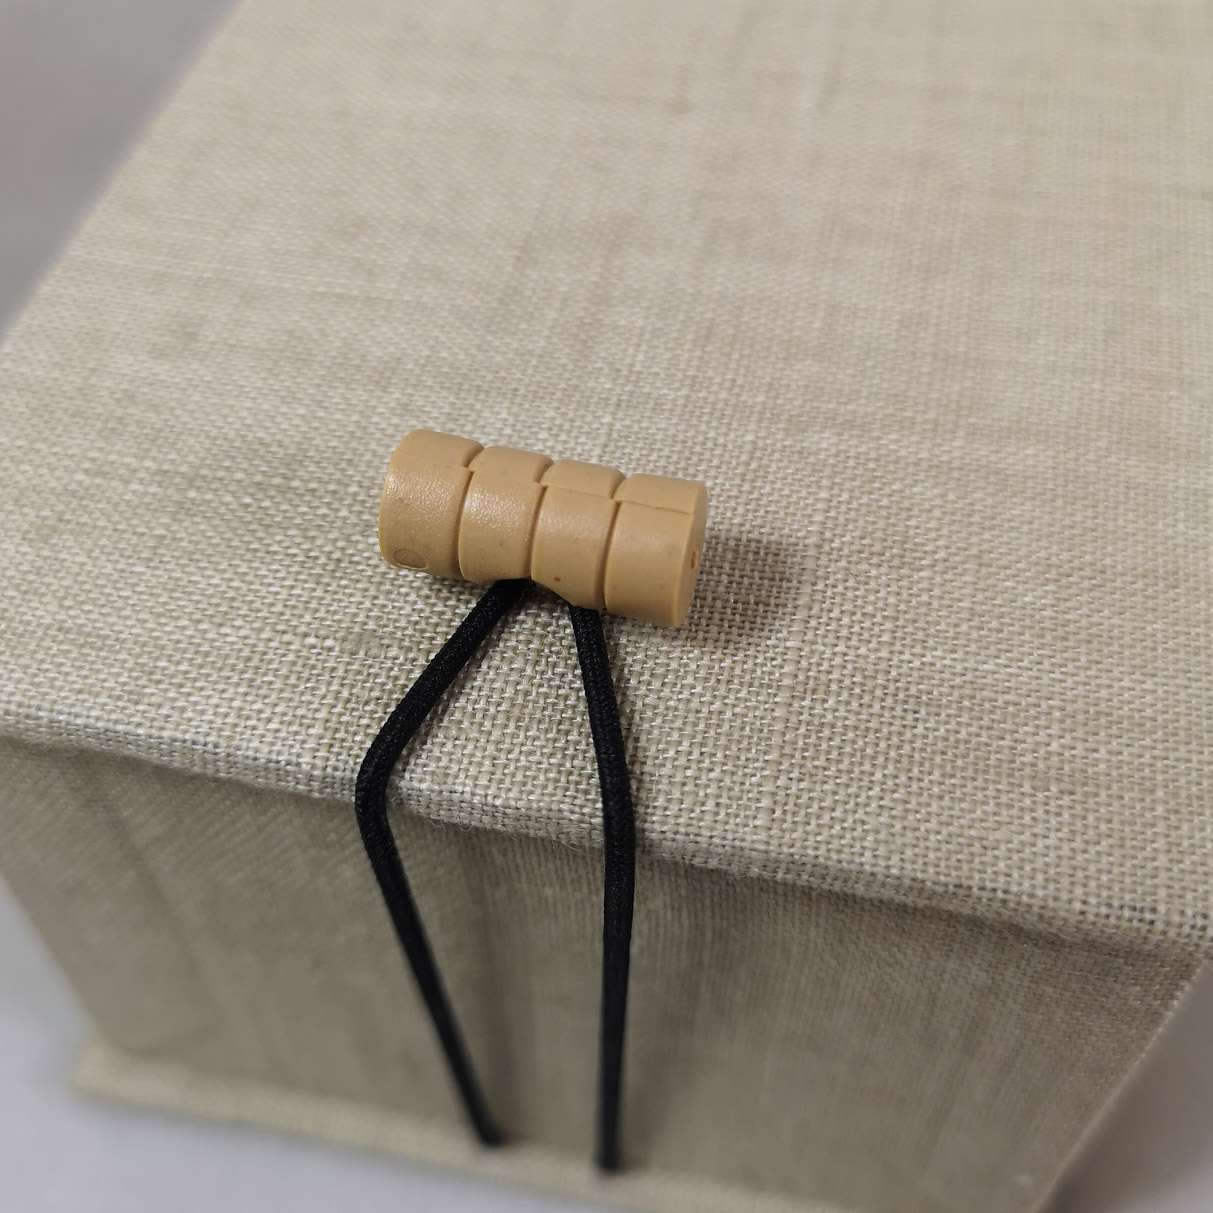 Linen box with elastic band closure